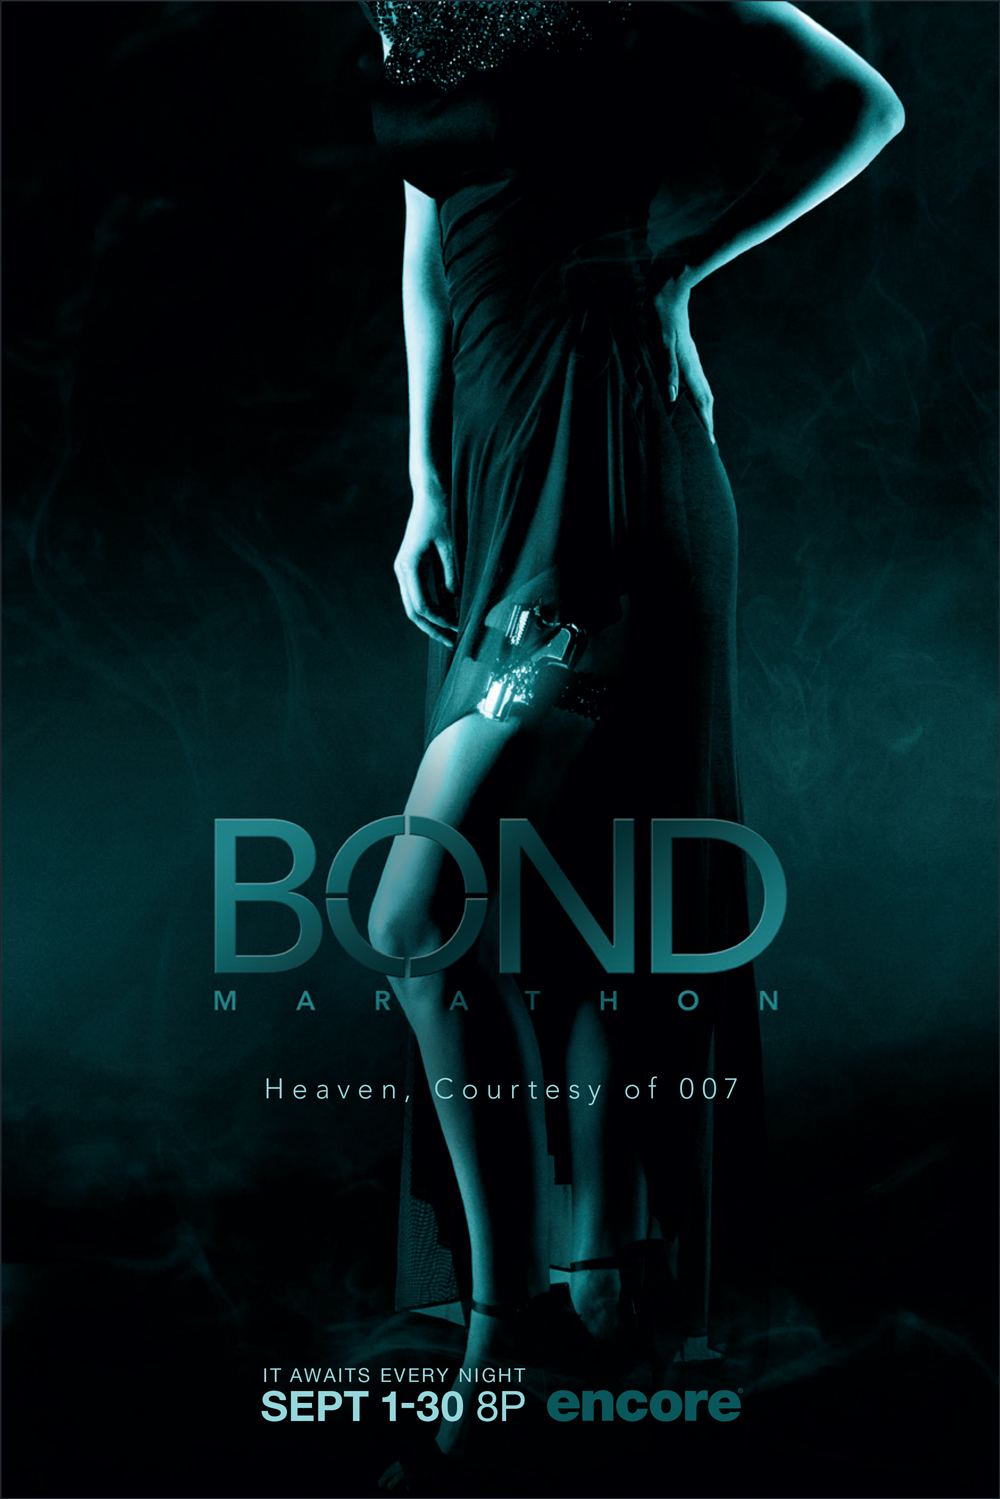 BOND_Key Art Comps_4.indd